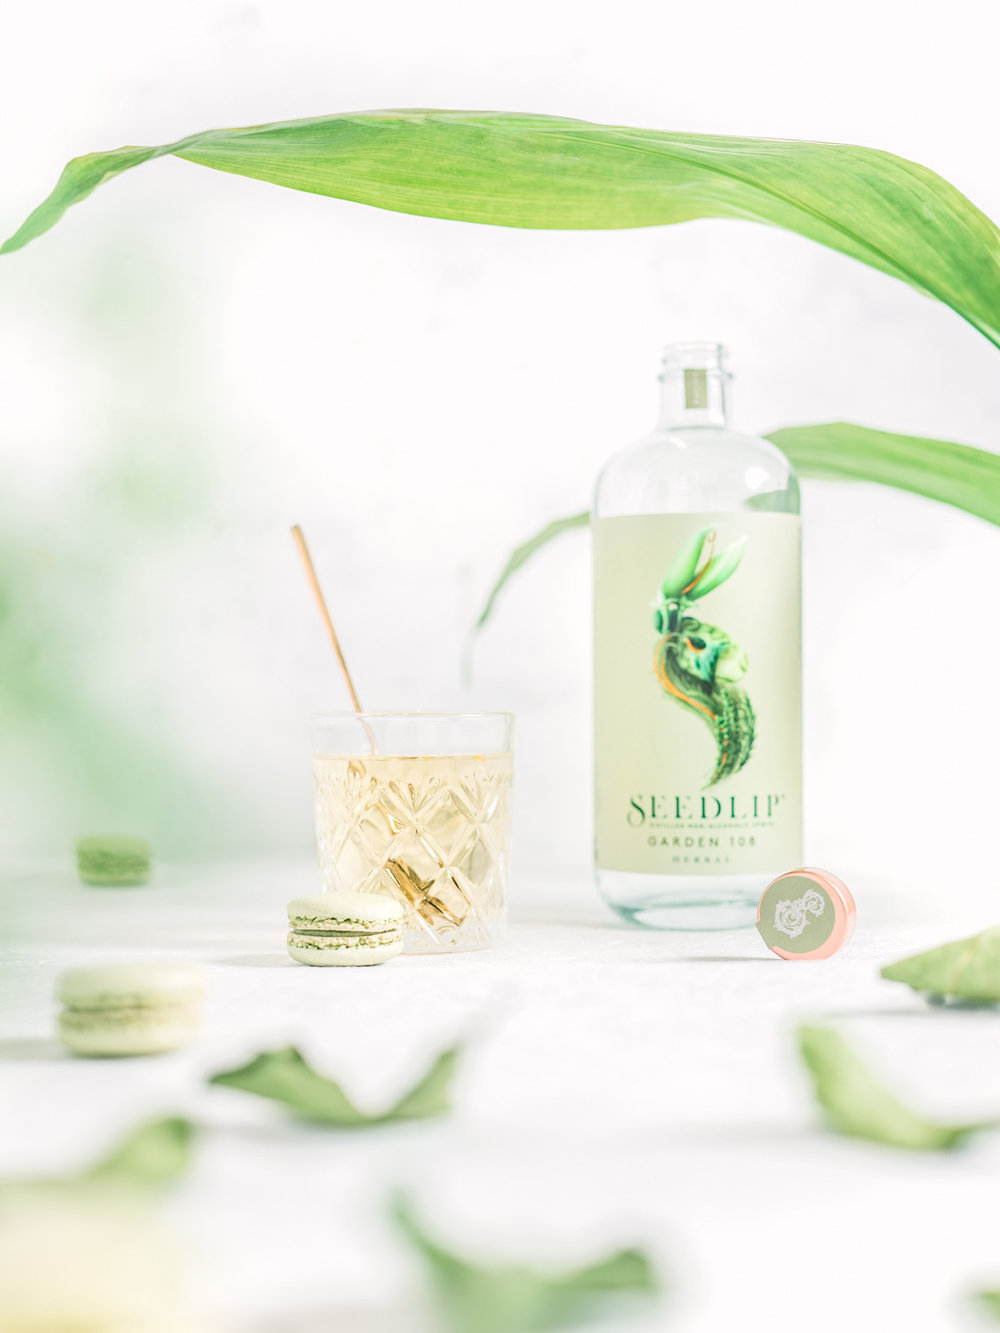 Seedlip non alcoholic spirit product mats dreyer stylist photographer fotograf oslo norge